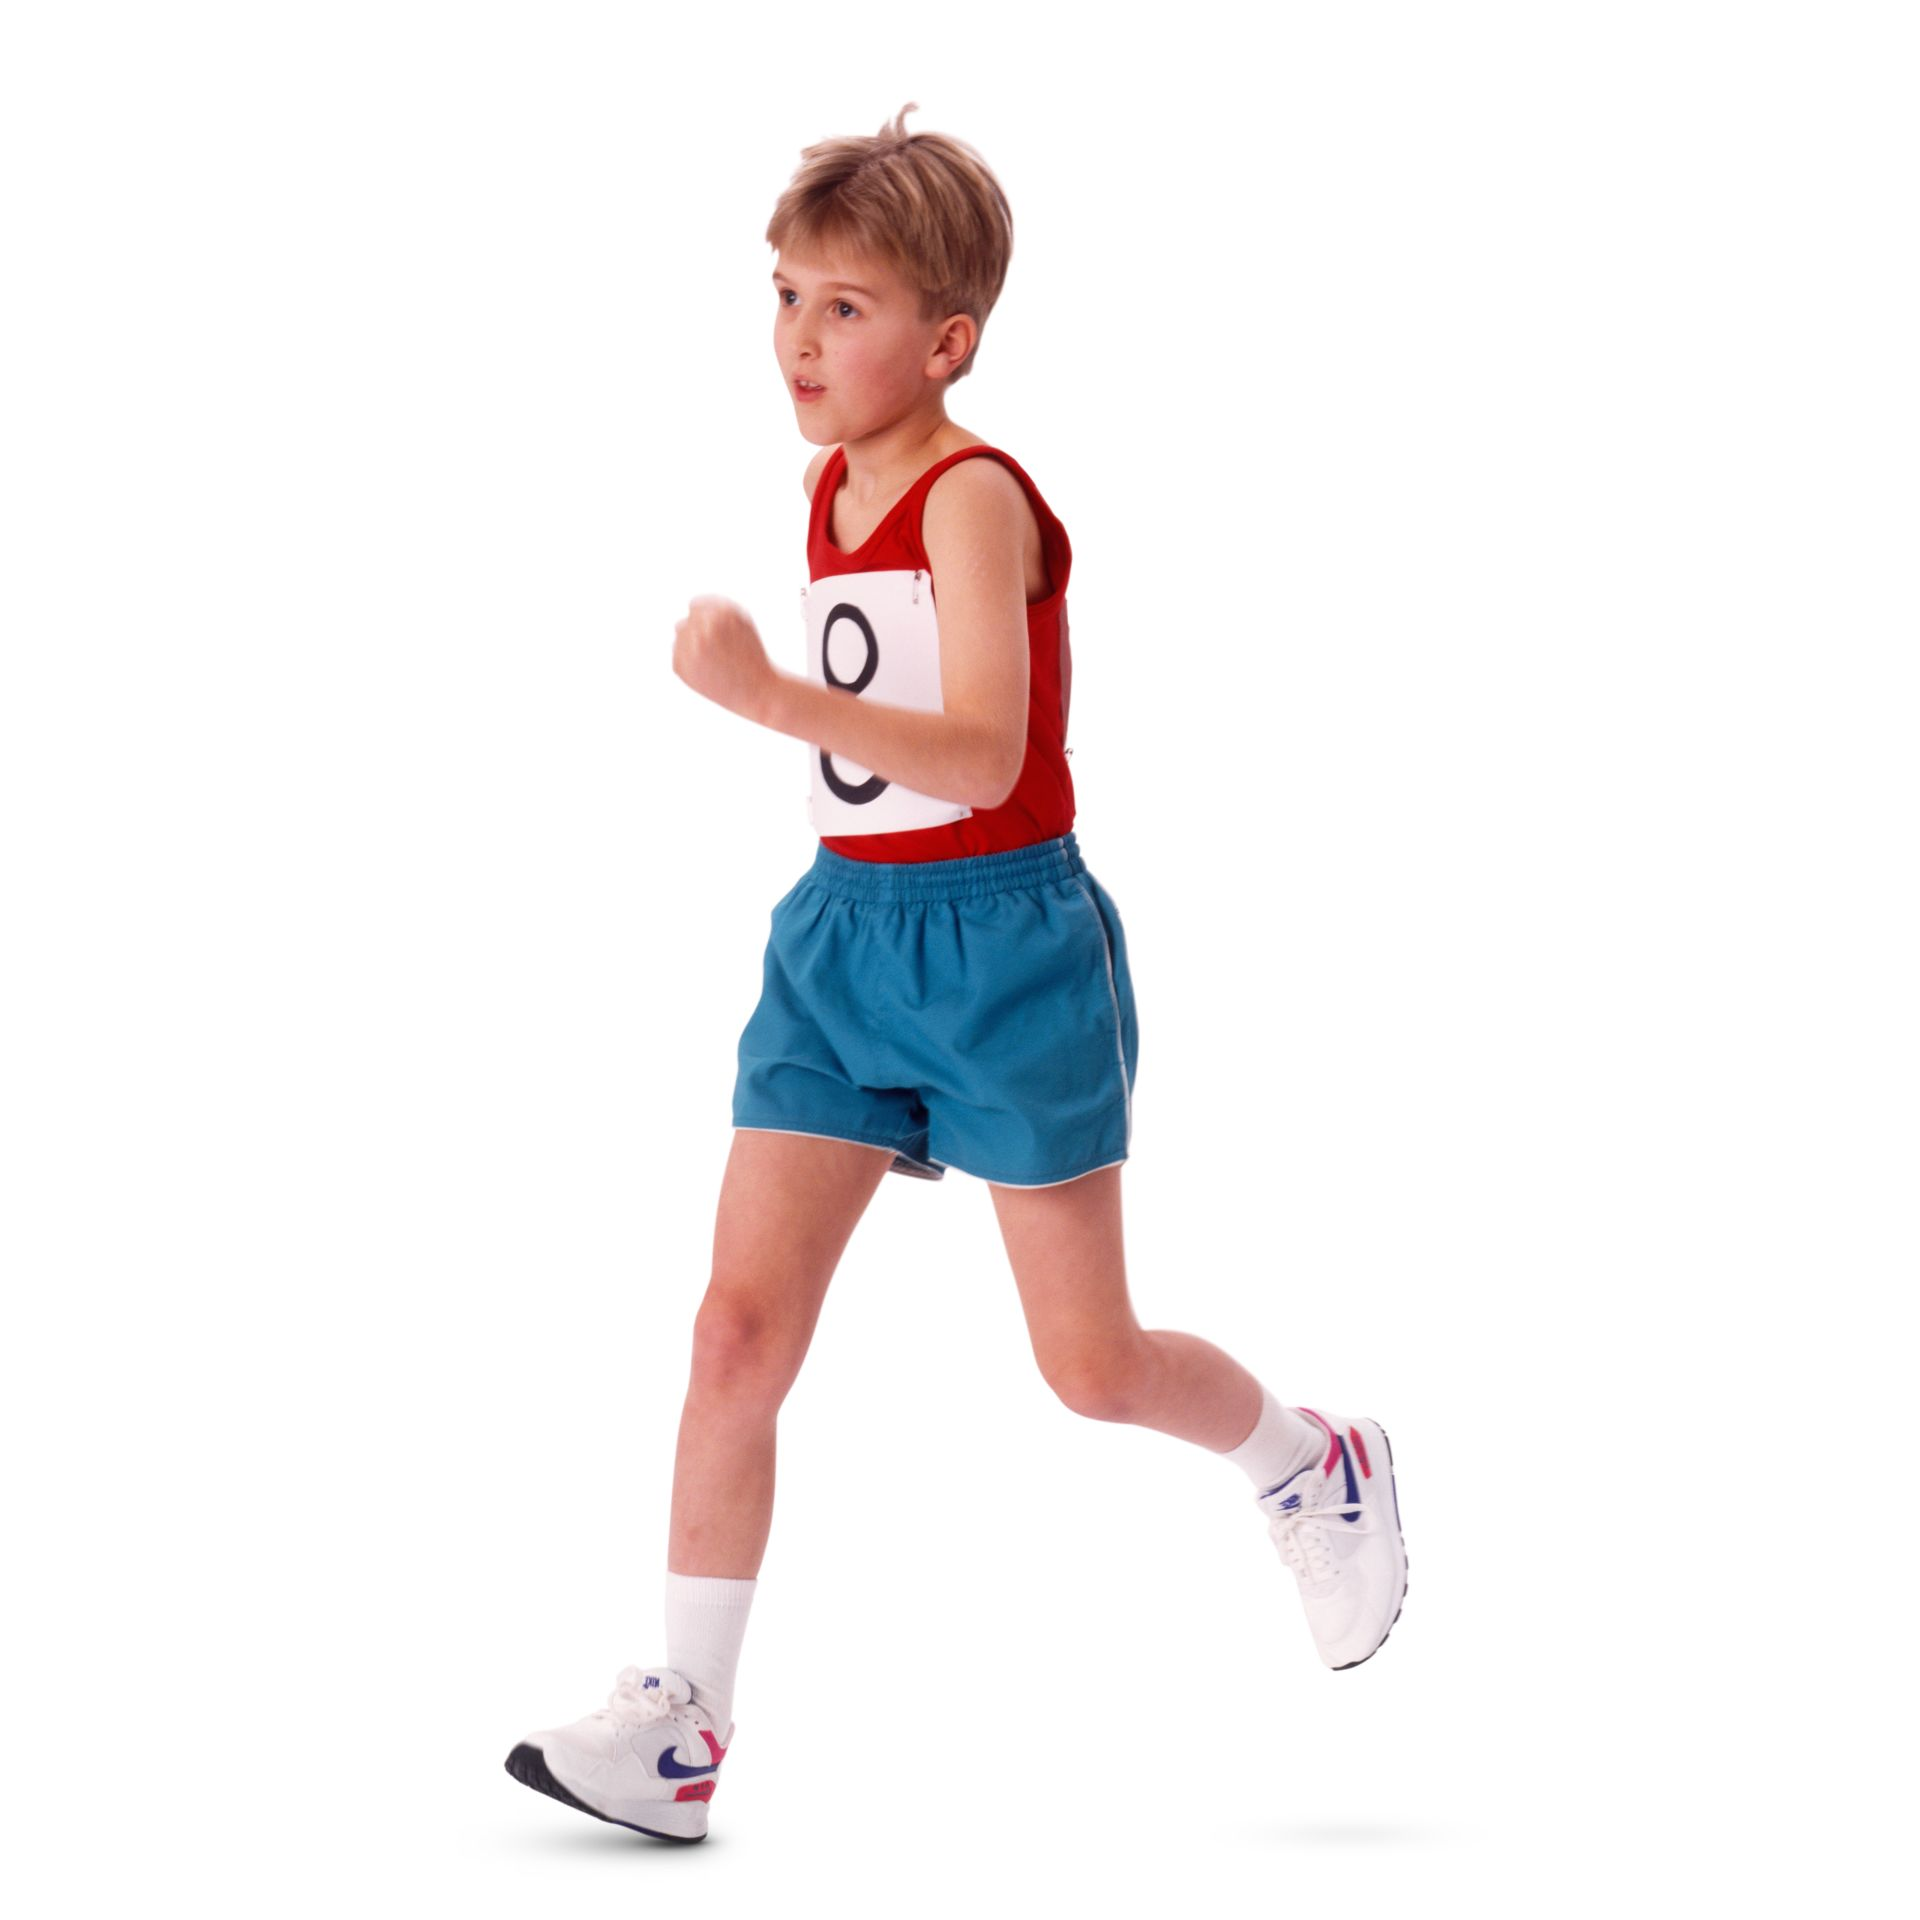 Kid Running Png (109+ images in Collection) Page 2.